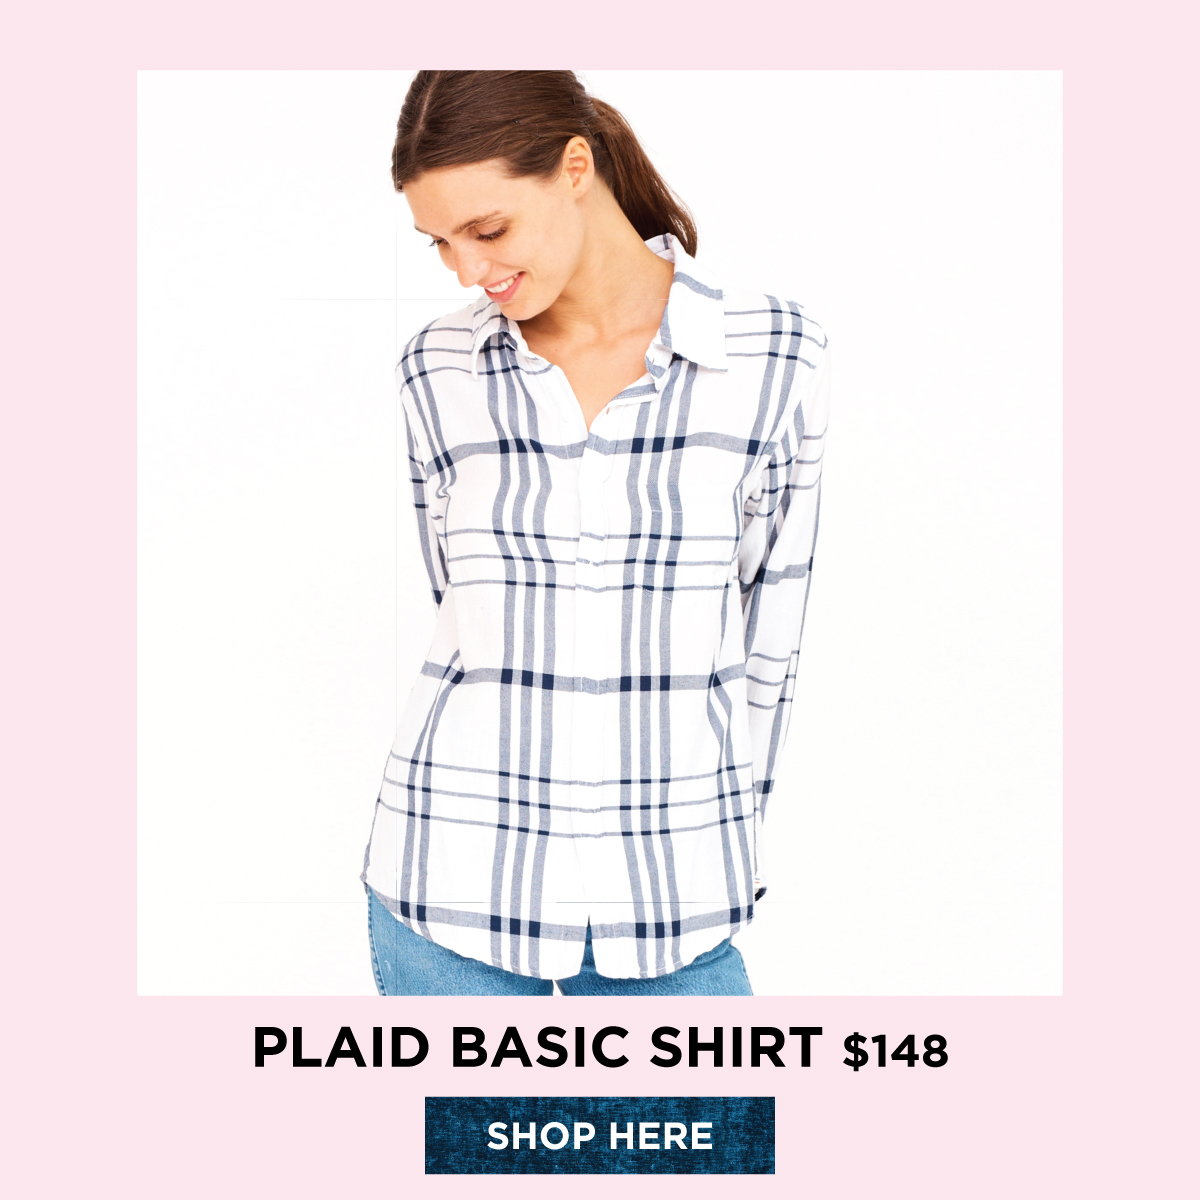 https://sundryclothing.com/collections/women/products/sundry-plaid-basic-shirt?variant=41410315213